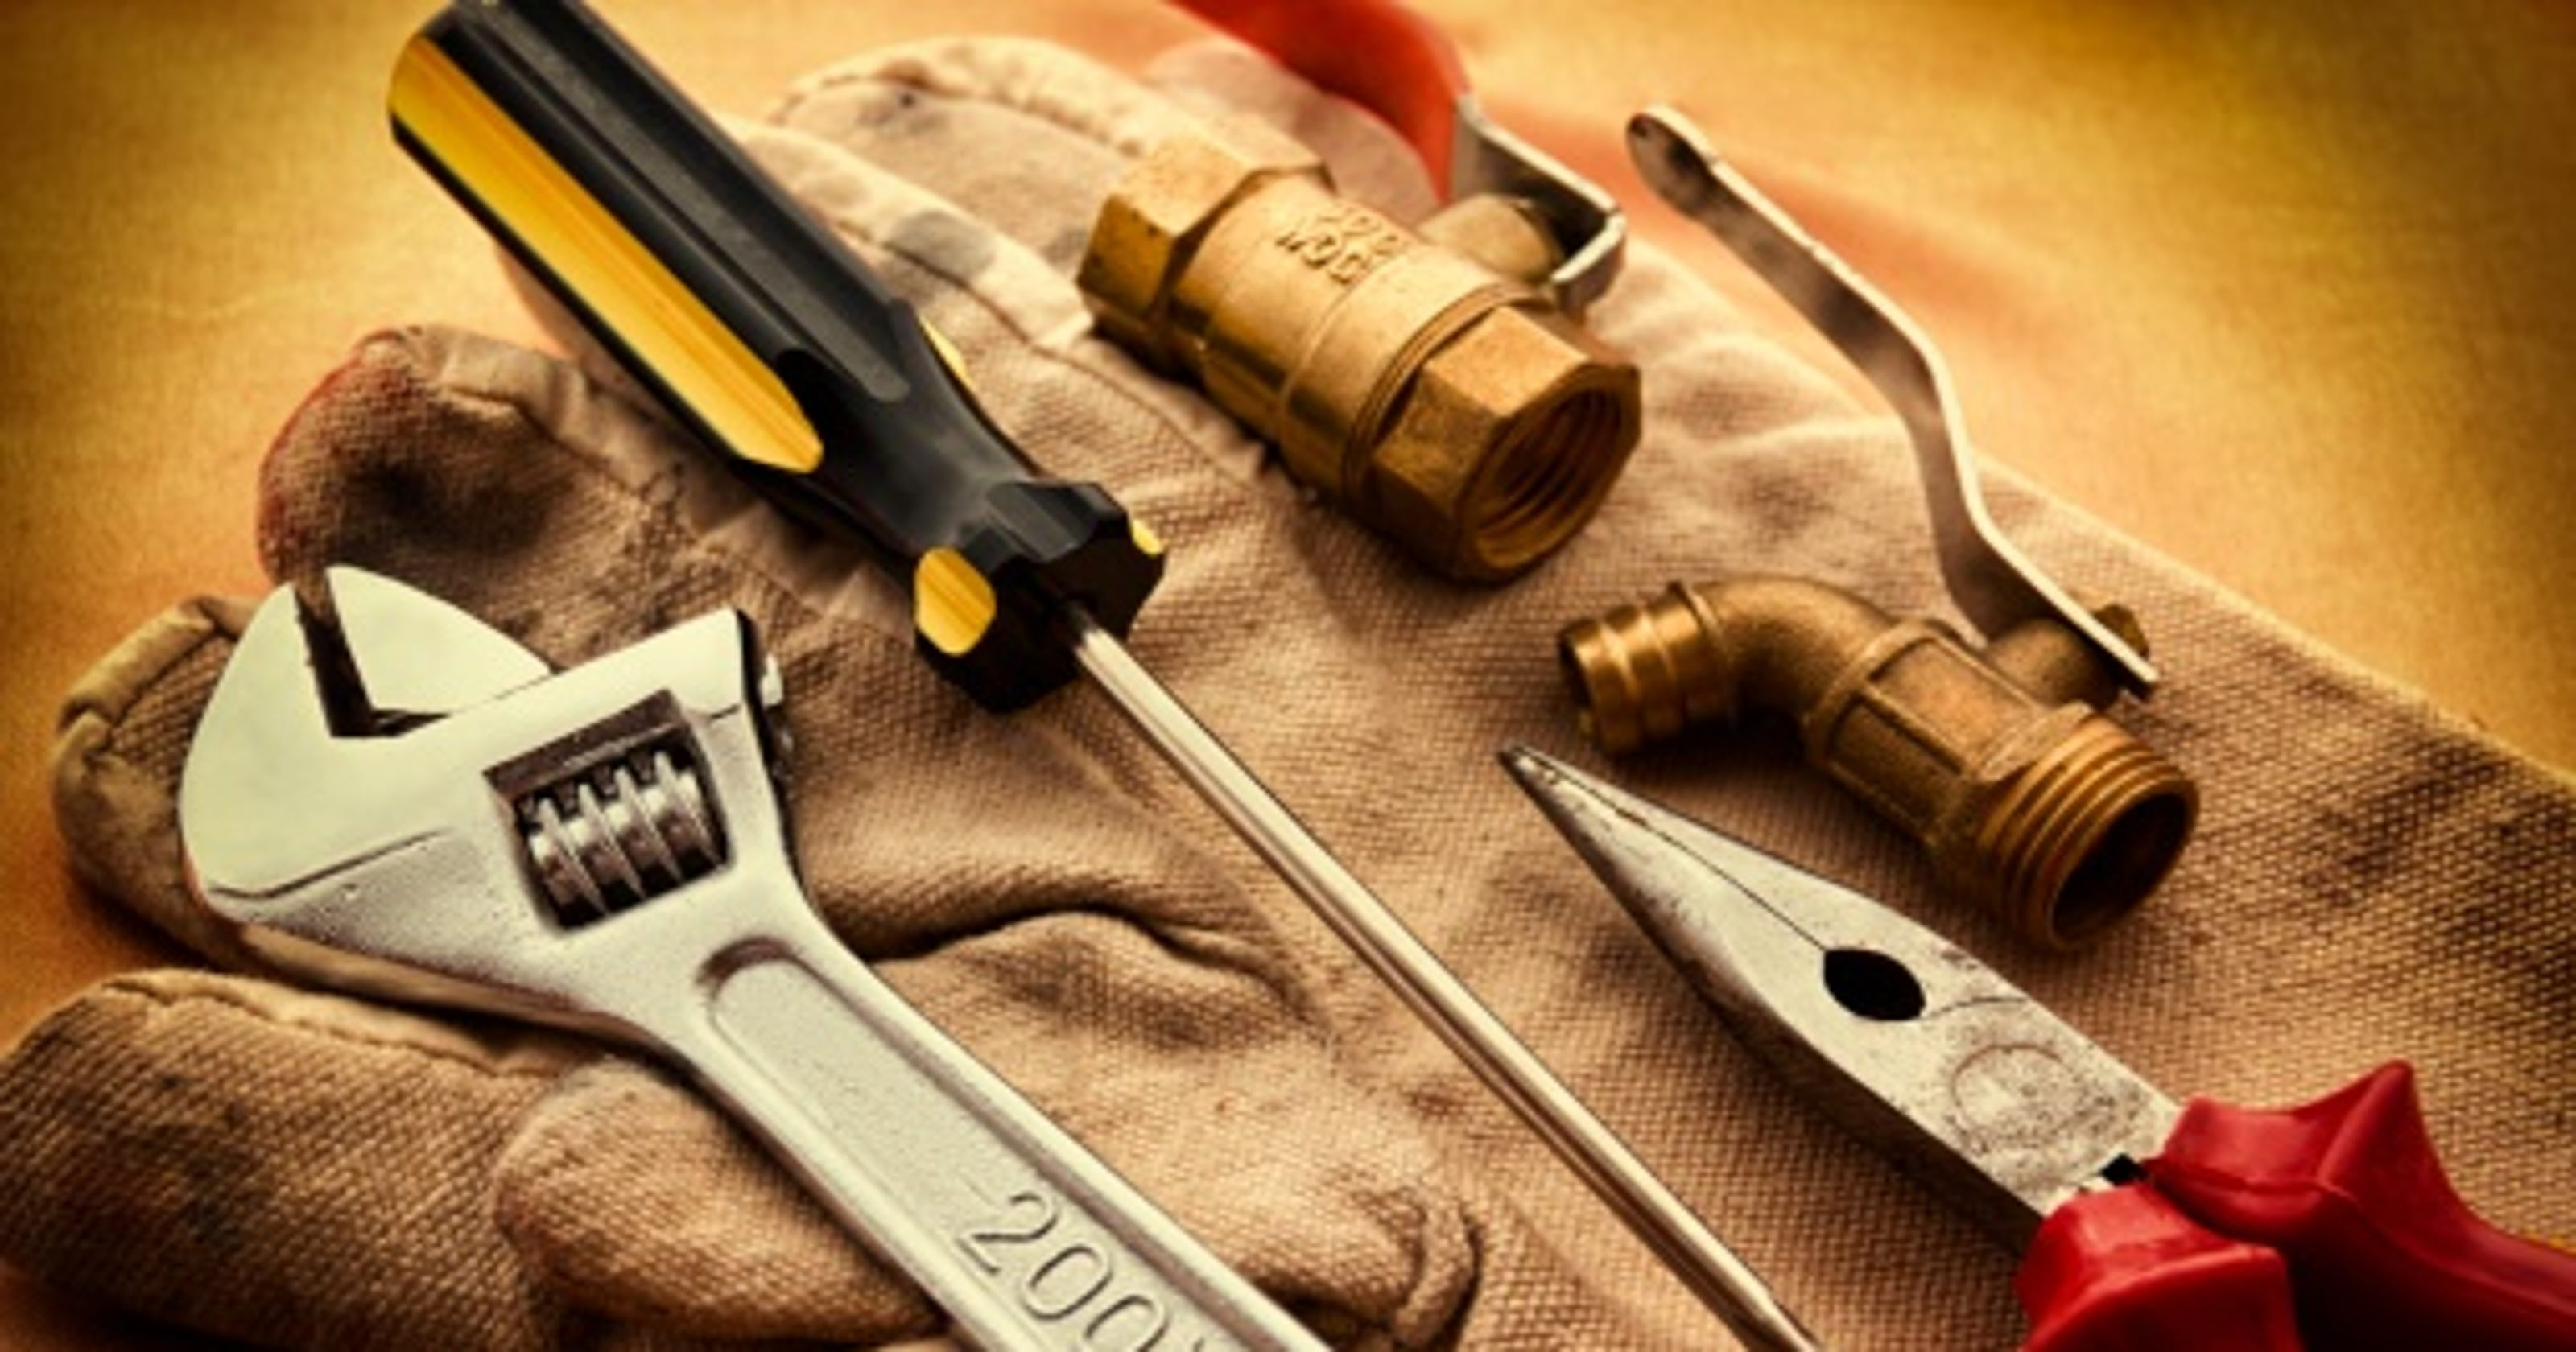 Renters have maintenance duties as well as landlords